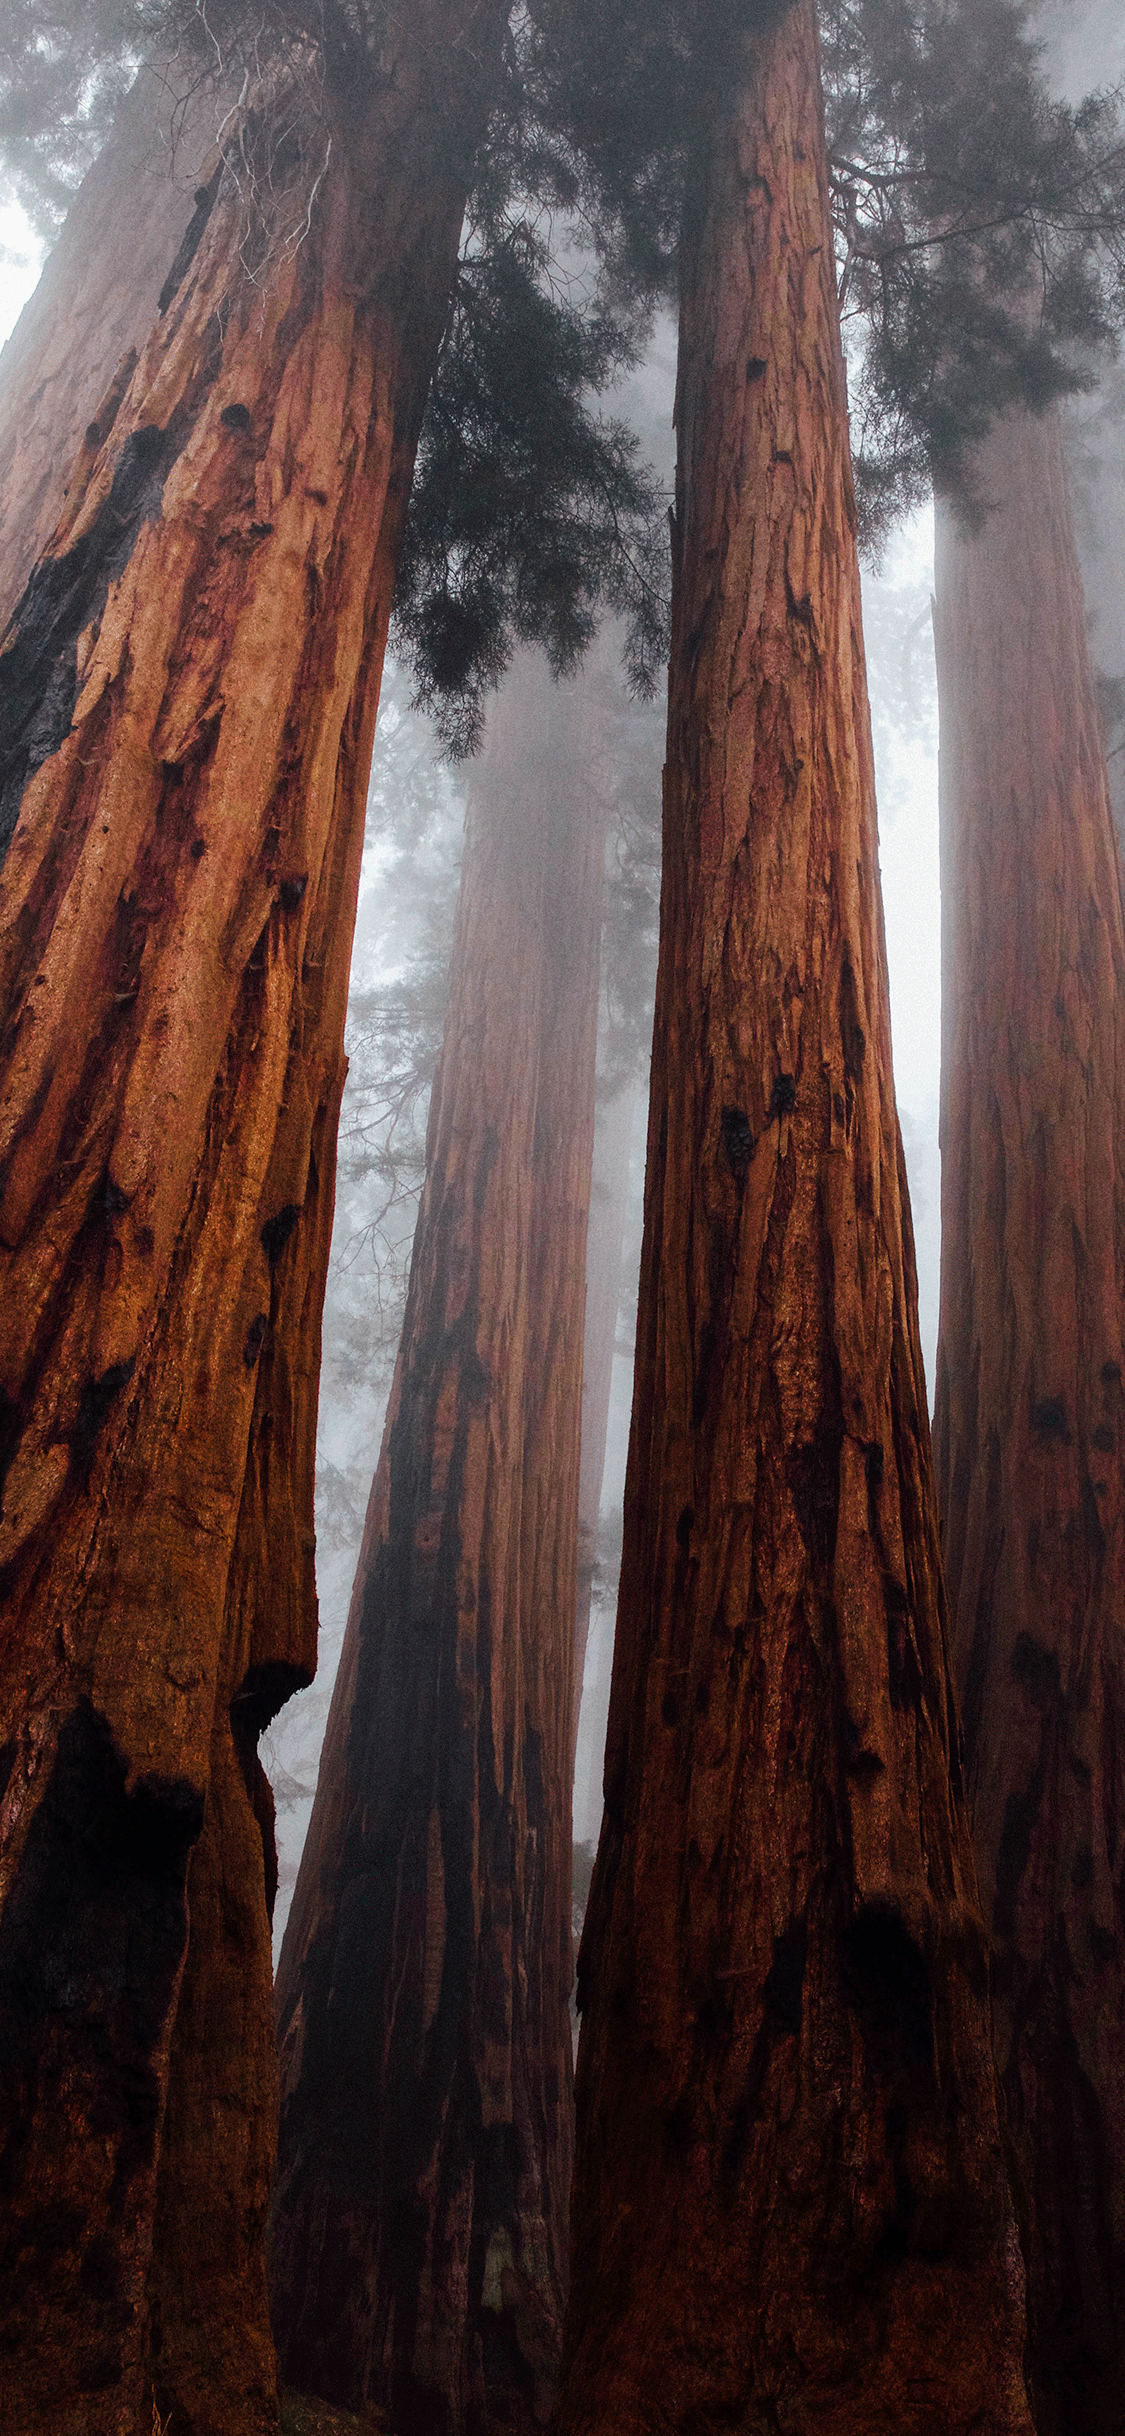 iPhone wallpaper tree sequoia Fonds d'écran iPhone du 09/10/2018